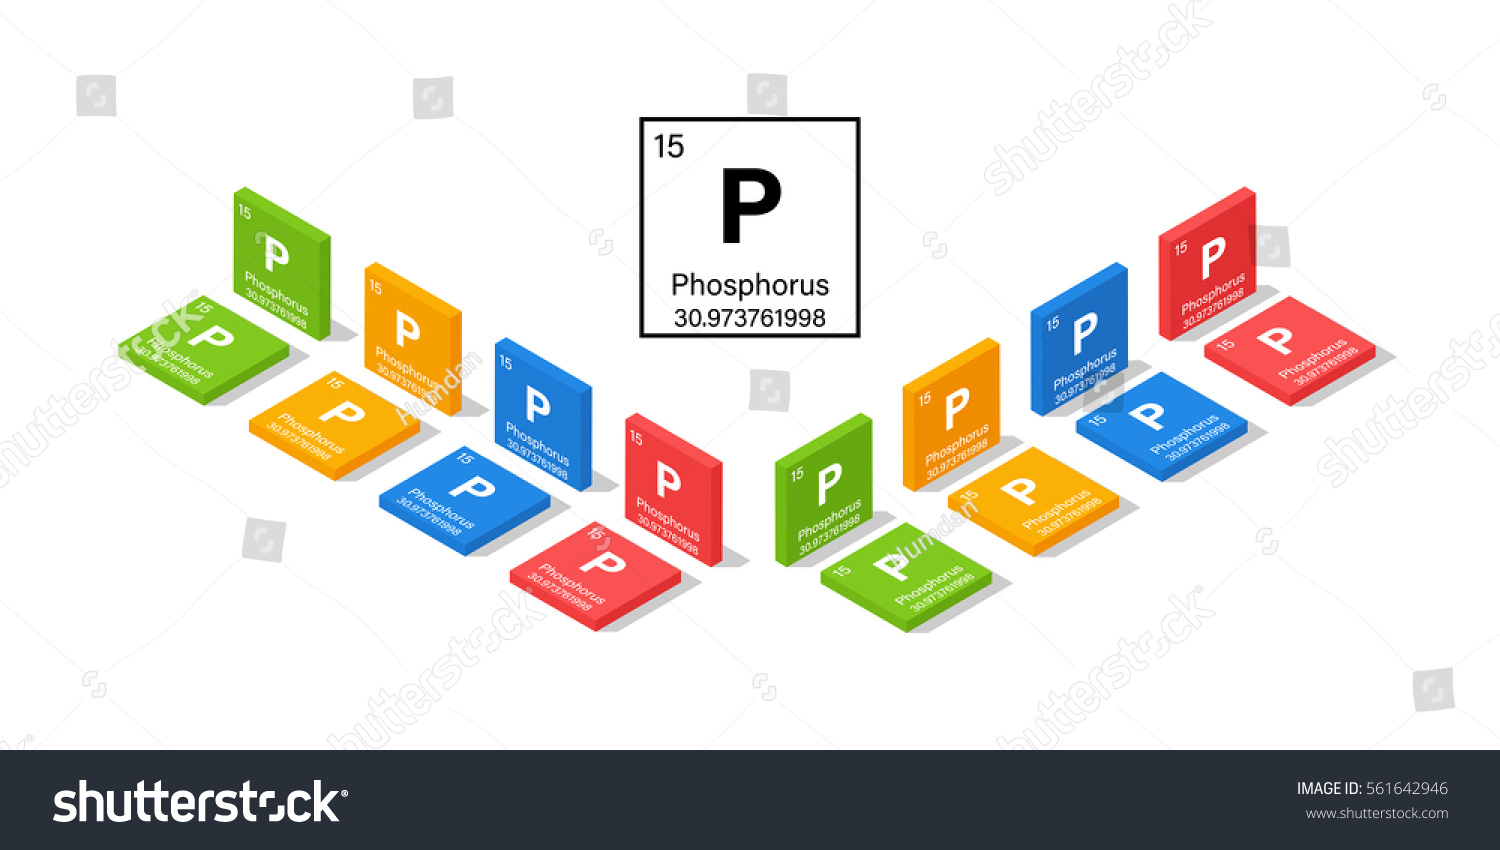 Elements periodic table phosphorus 3d isometric stock vector elements in the periodic table phosphorus 3d isometric style vector illustration gamestrikefo Image collections